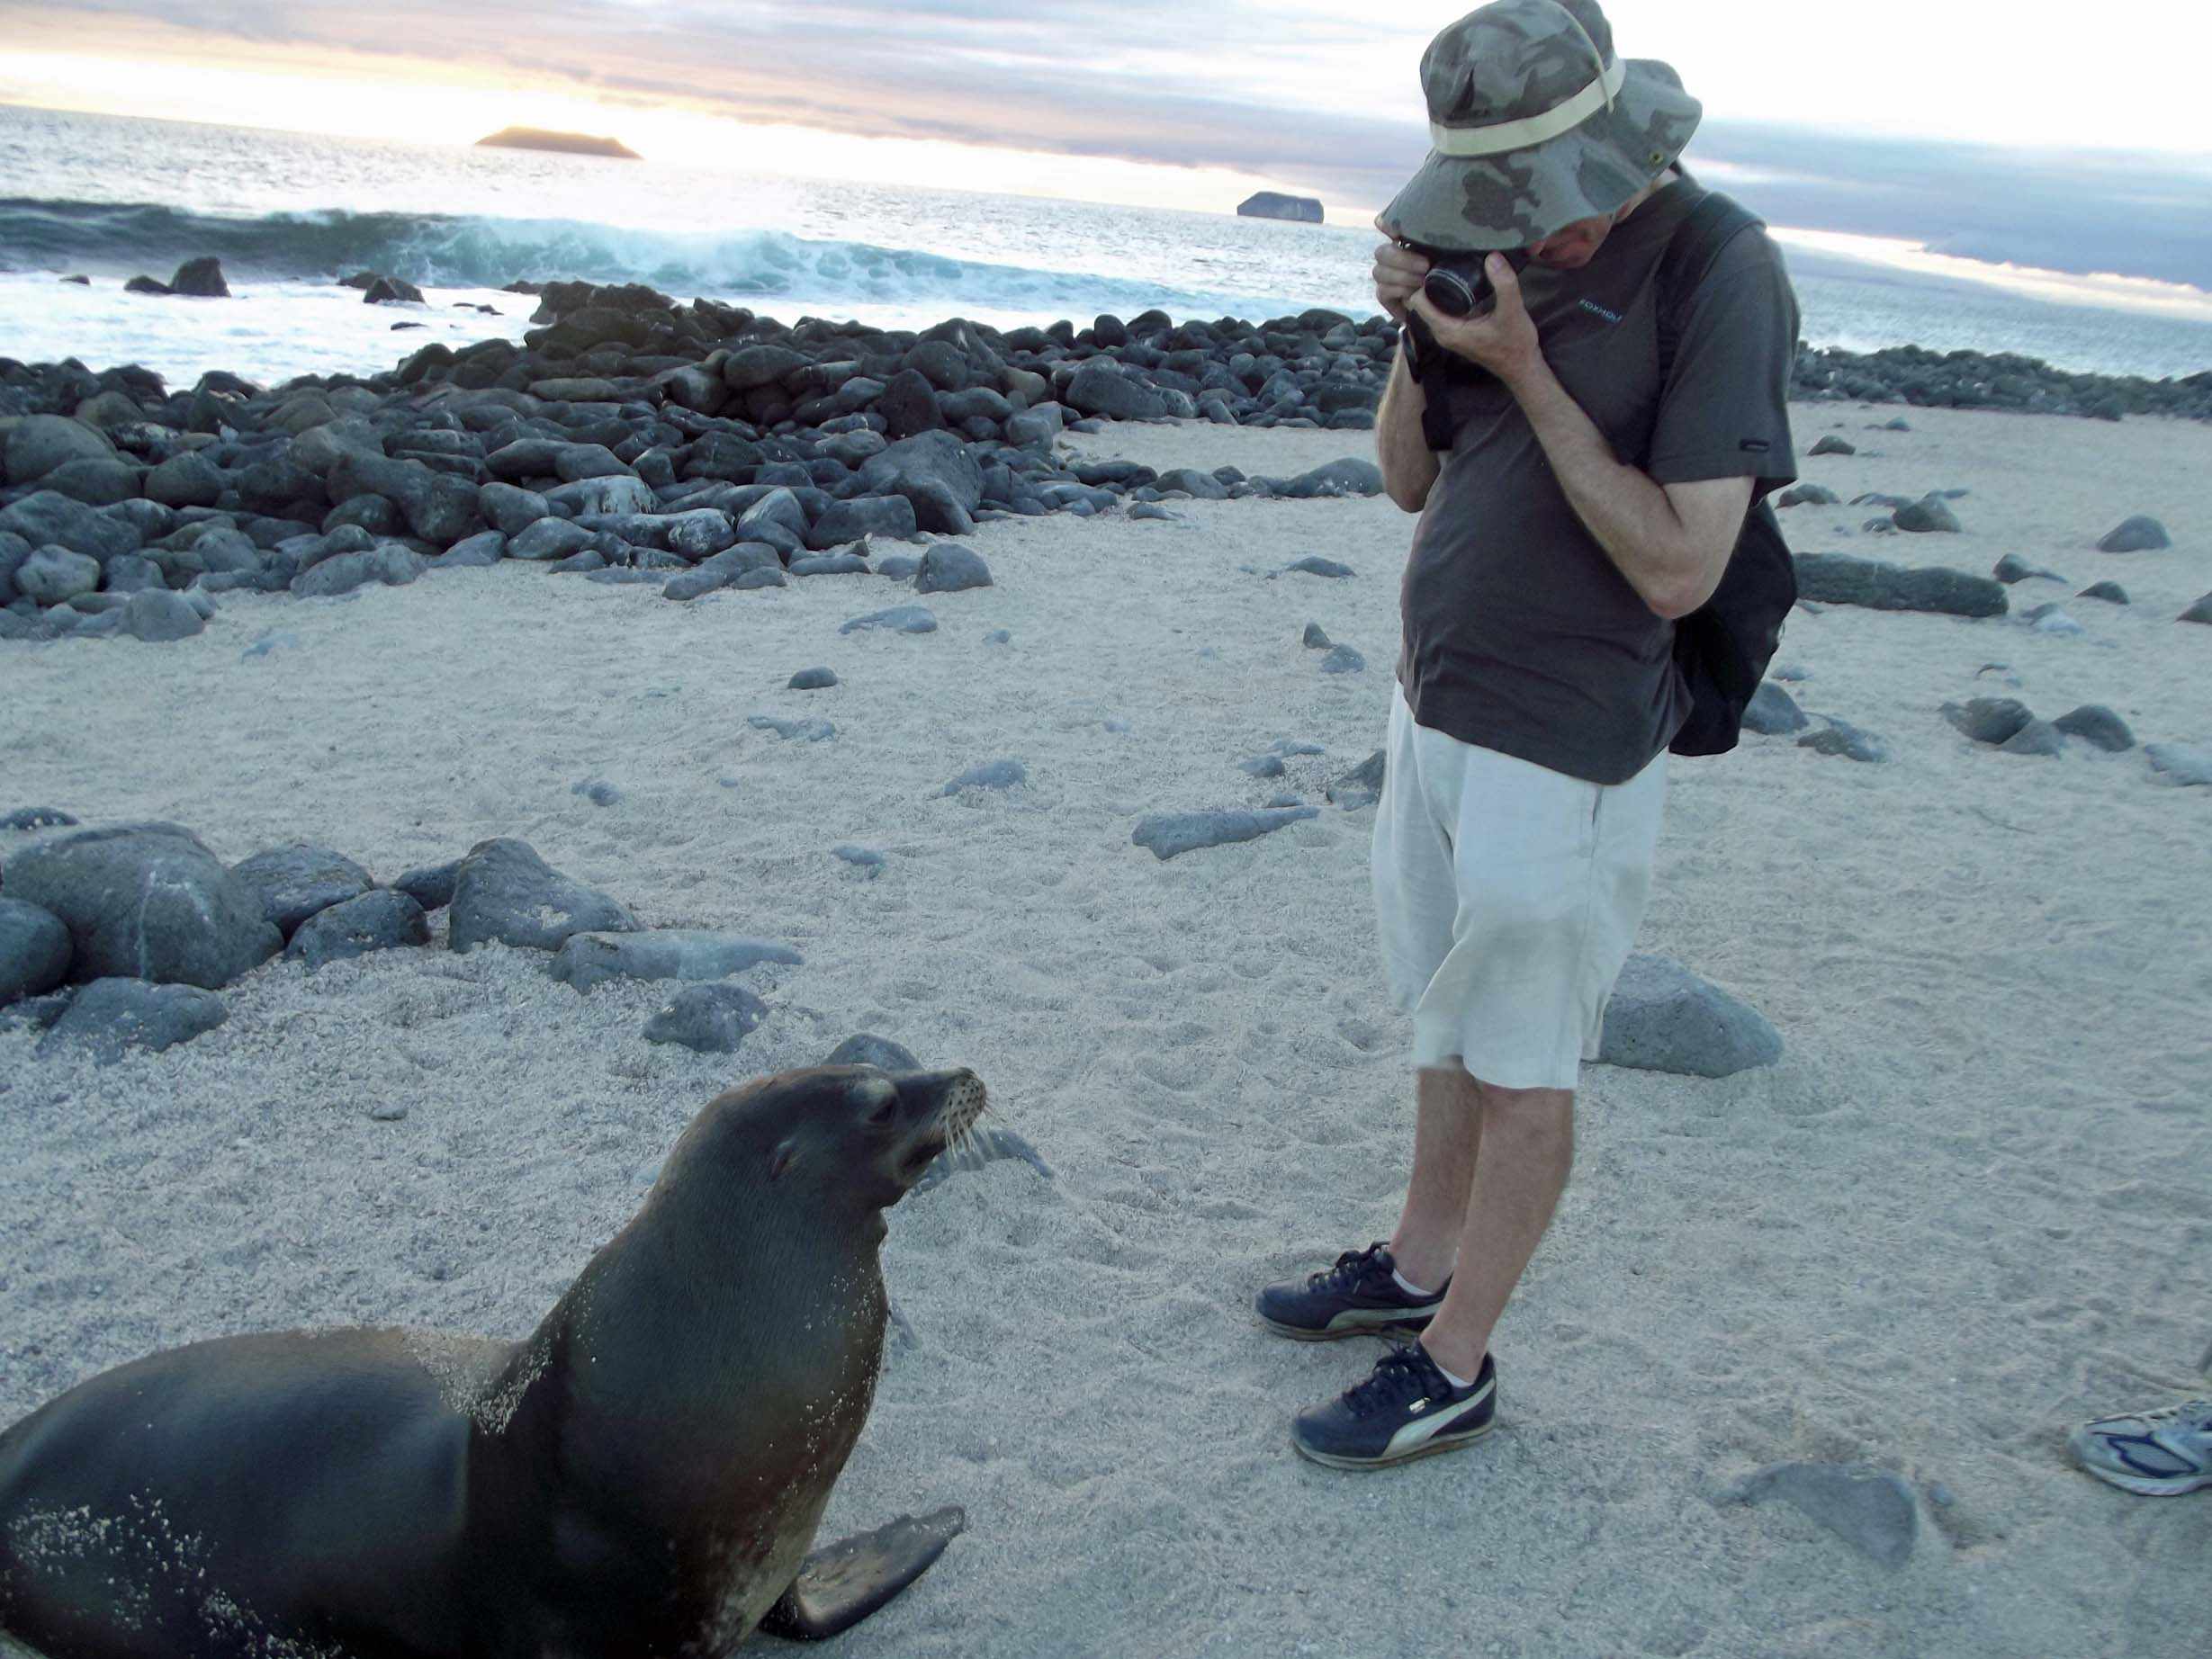 Man in shorts photographing a seal at his feet